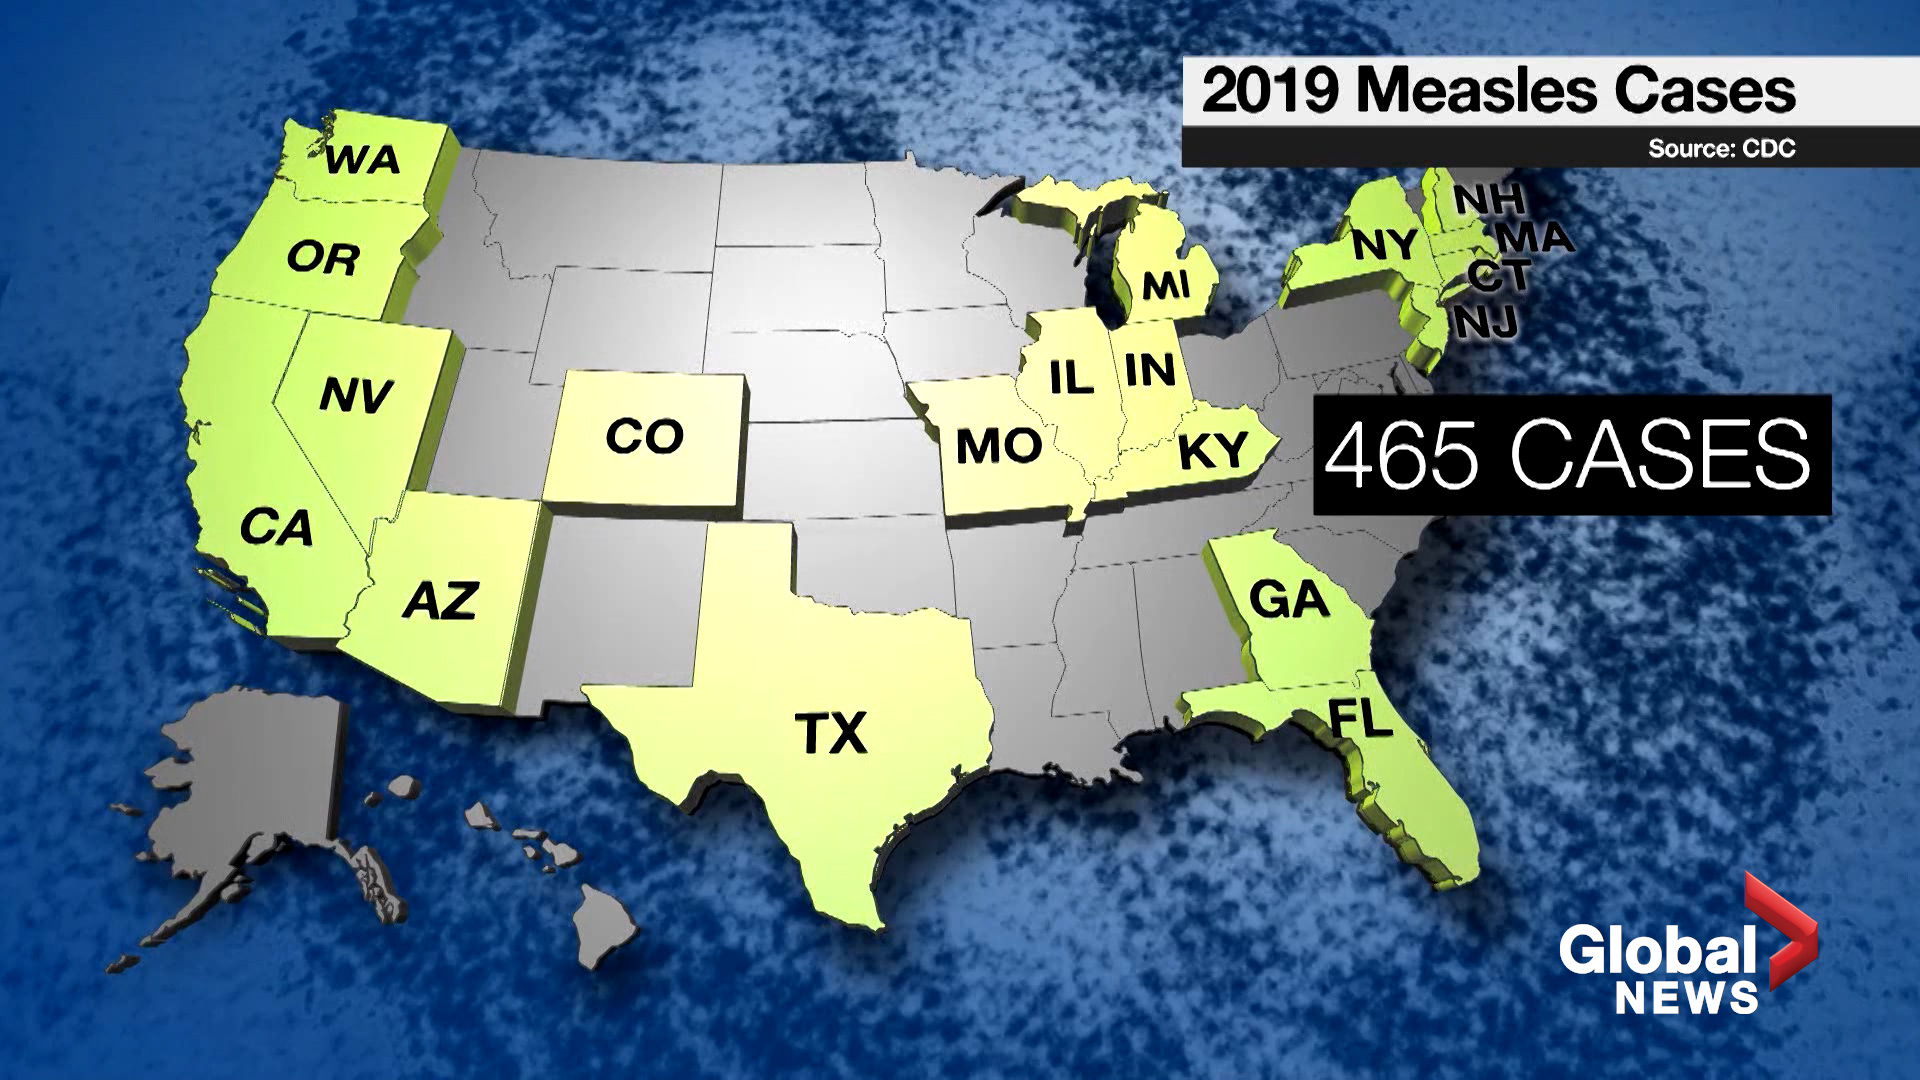 United States measles cases surge again as outbreak nears record